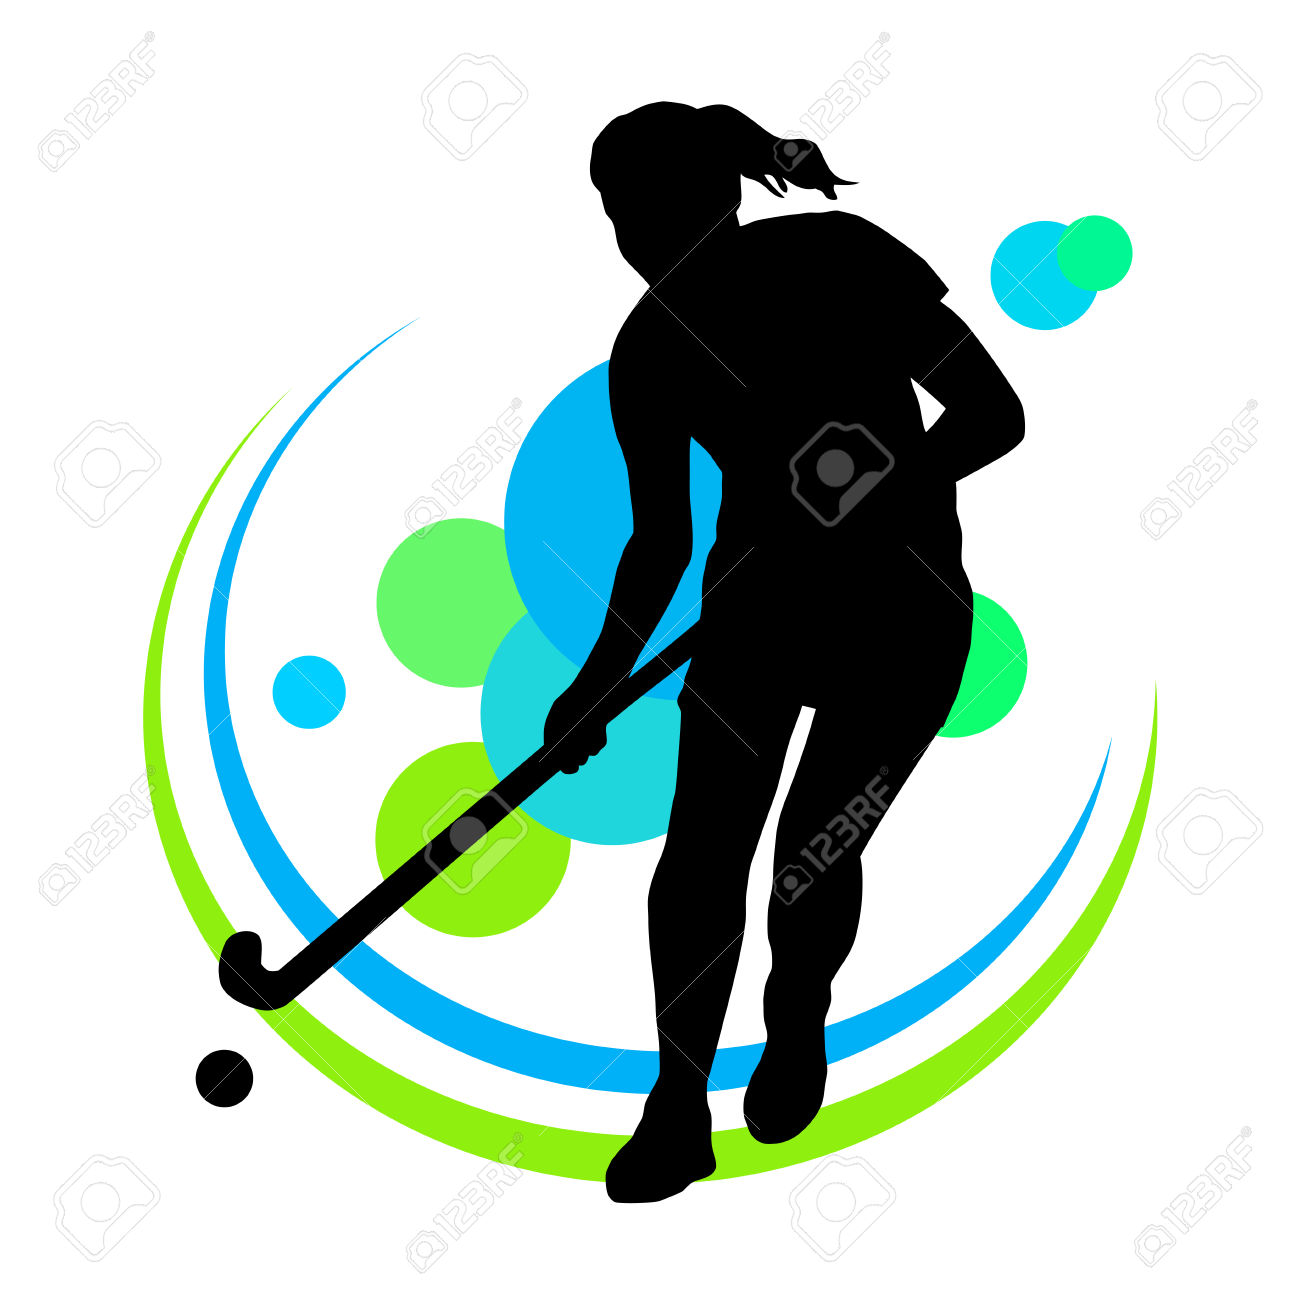 hockey player diagram profibus cable wiring clipart images free download best